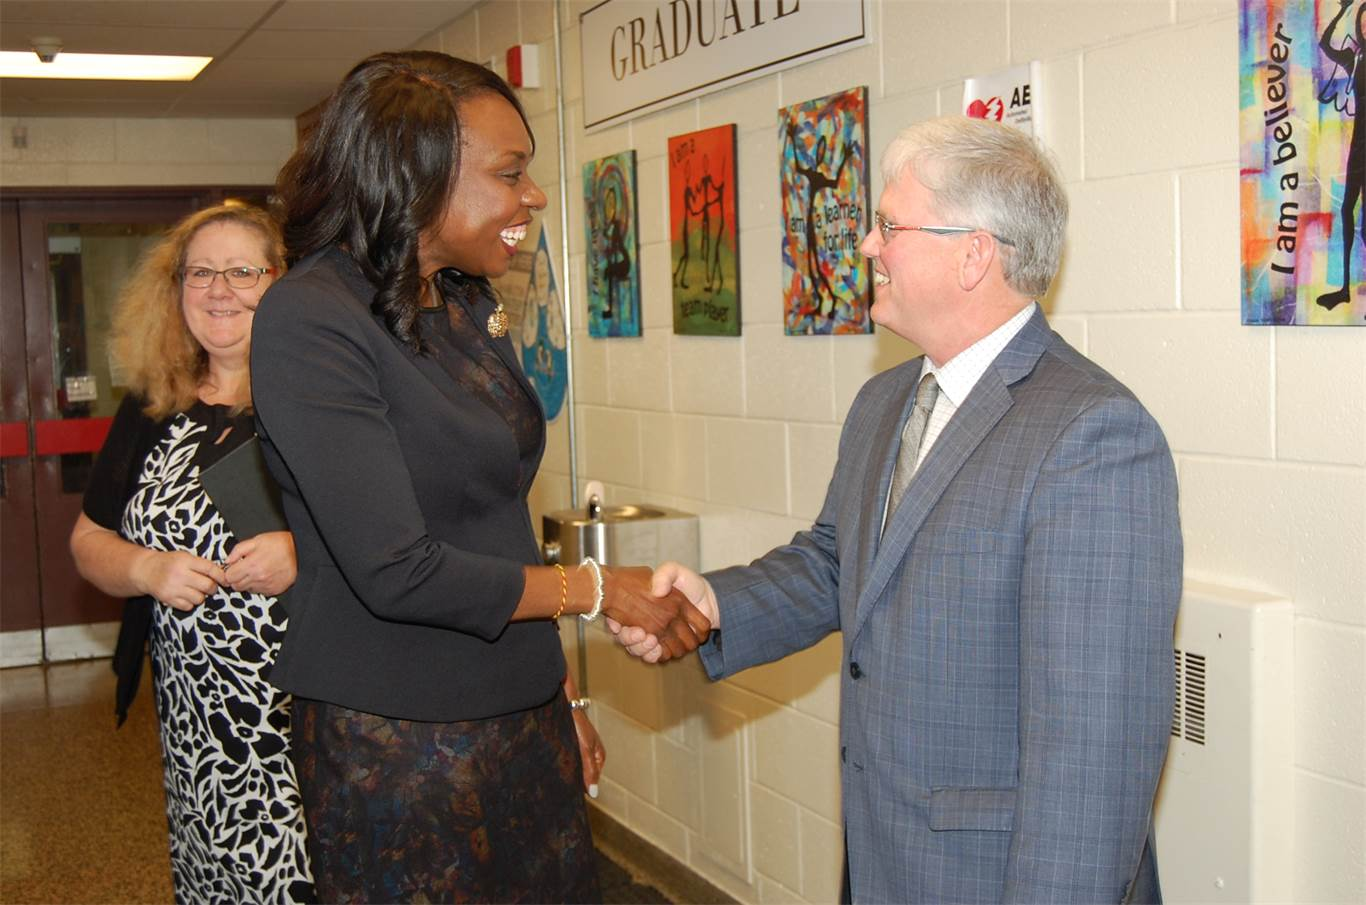 Minister of Education Mitzie Hunter speaks with HWCDSB Chairperson Patrick Daly.